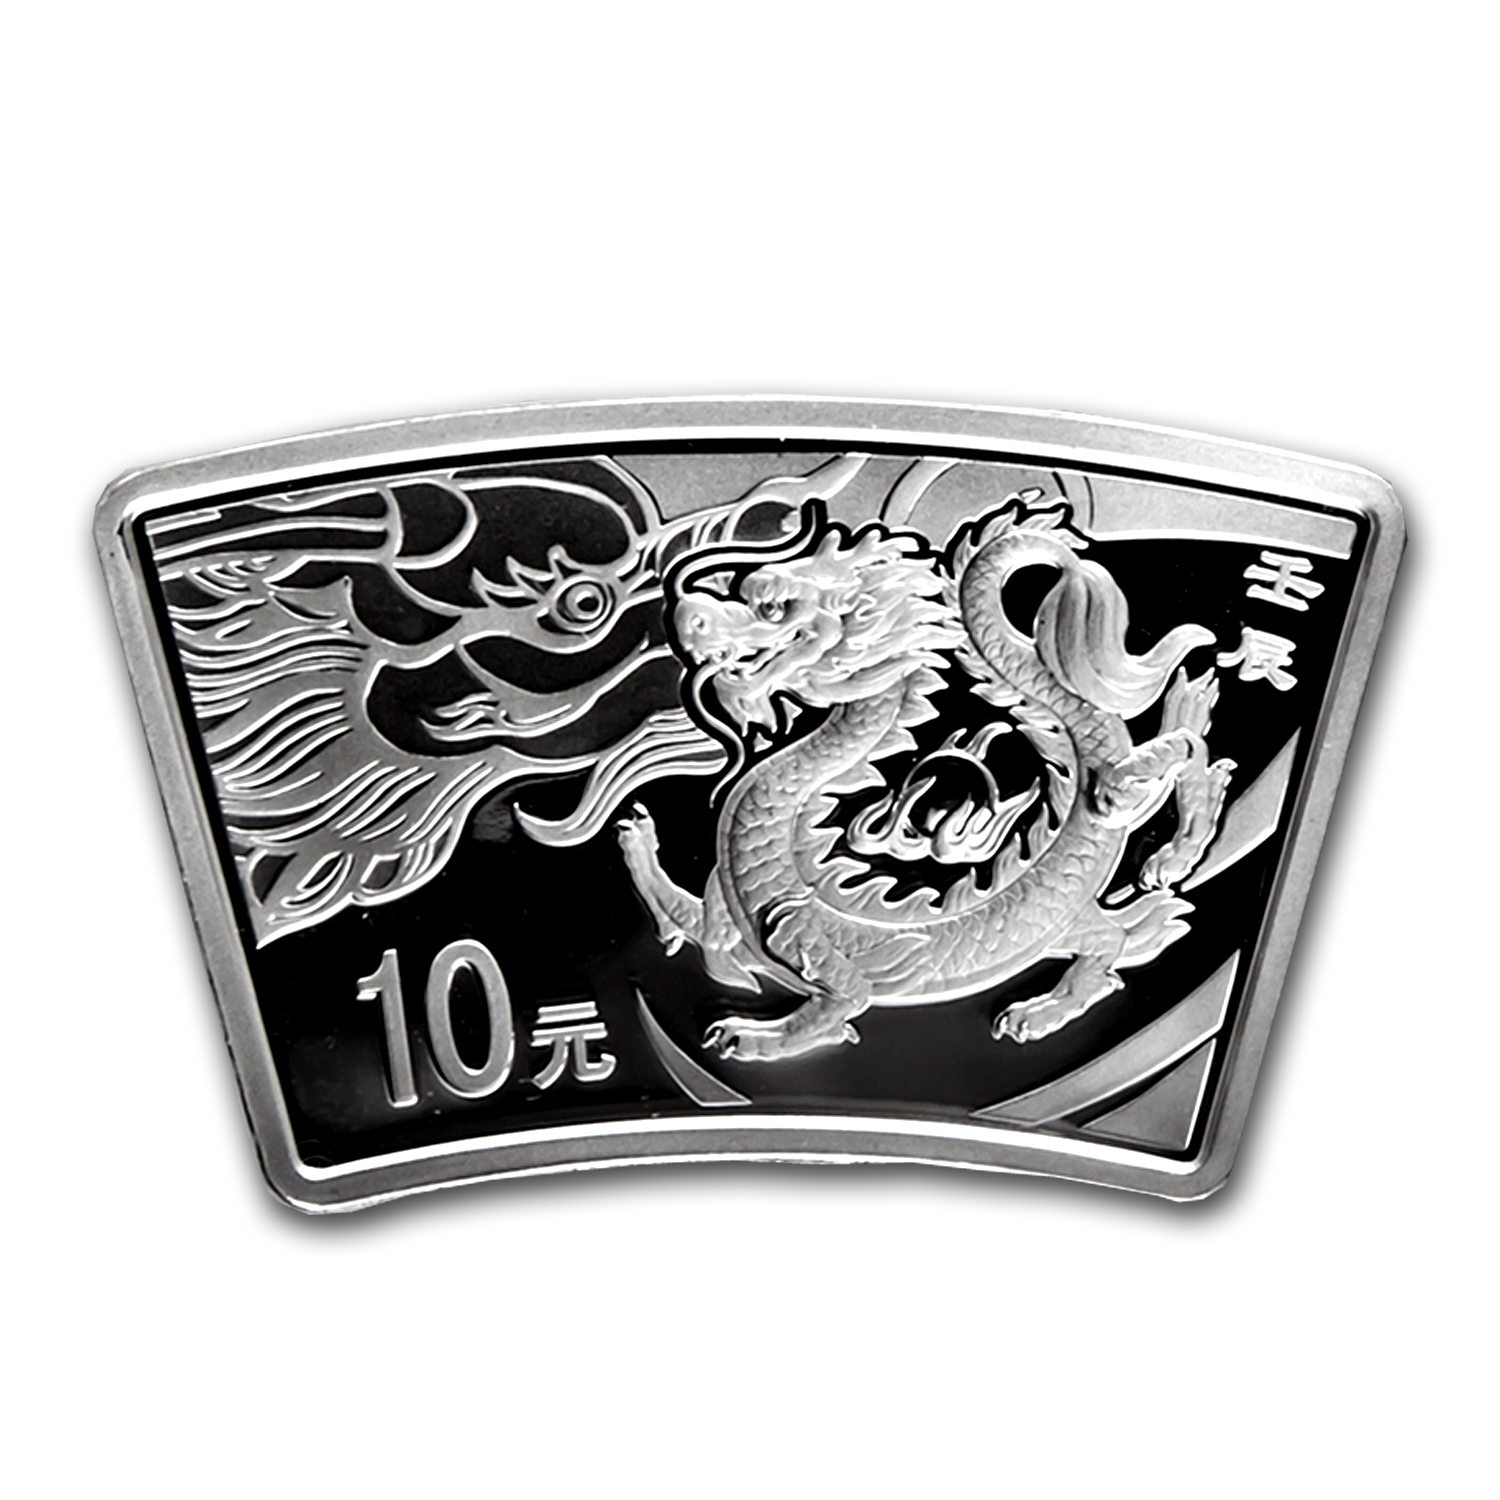 2012 China 1 oz Silver Fan Year of the Dragon (w/Box & COA)